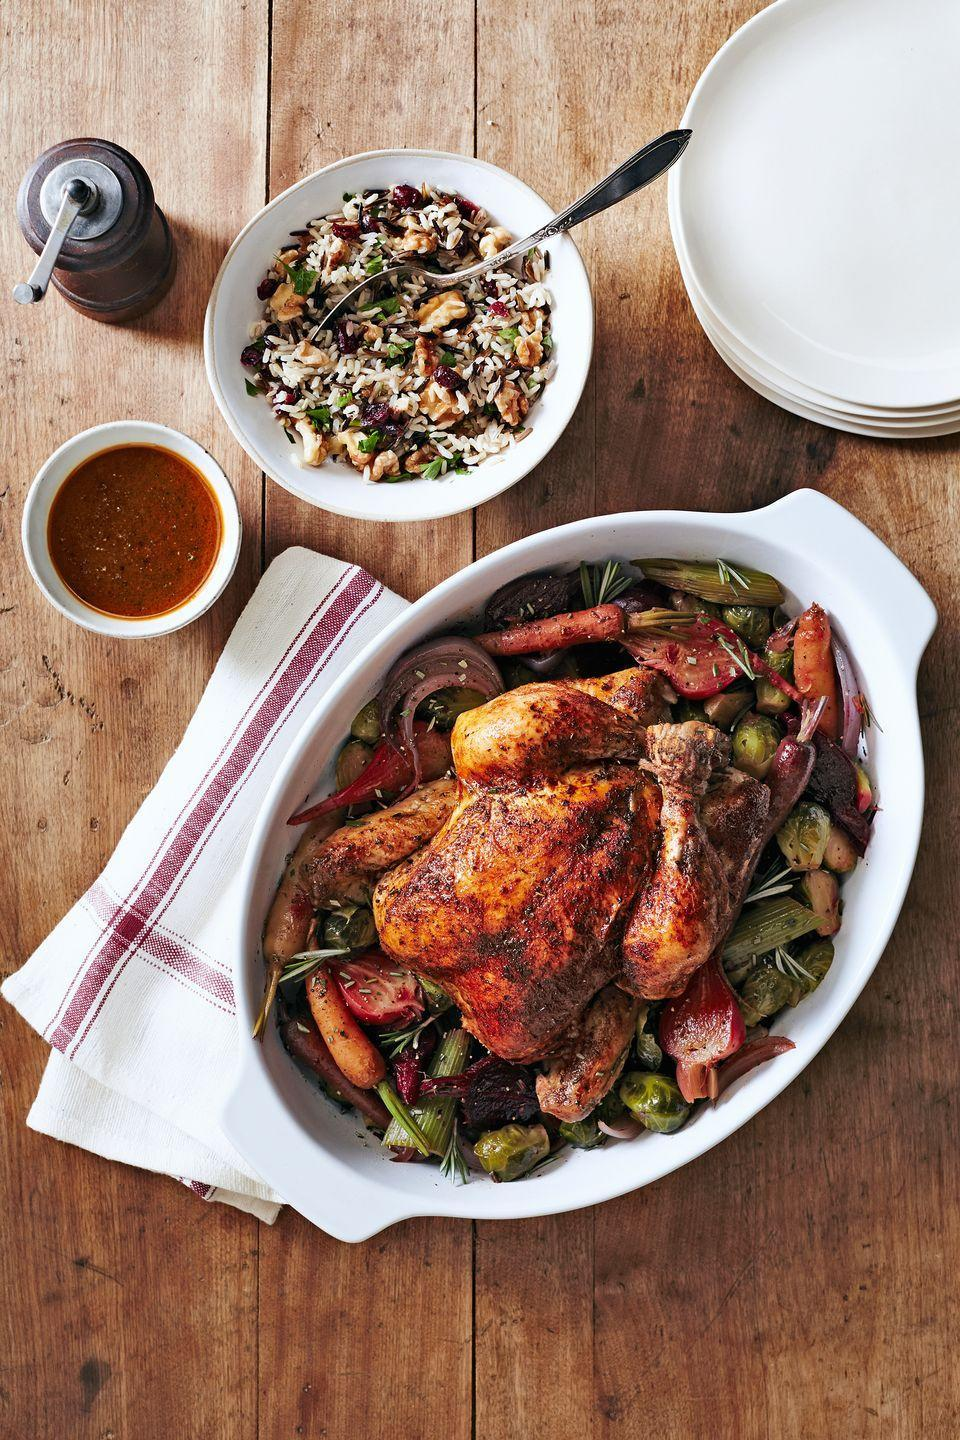 "<p>Need something healthy and hands-off? Look no further than this easy-yet-impressive dinner that's sure to please your whole flock.</p><p><a href=""https://www.countryliving.com/food-drinks/recipes/a5689/herbed-chicken-beets-brussels-recipe-clx1014/"" rel=""nofollow noopener"" target=""_blank"" data-ylk=""slk:Get the recipe."" class=""link rapid-noclick-resp""><strong>Get the recipe.</strong></a></p>"